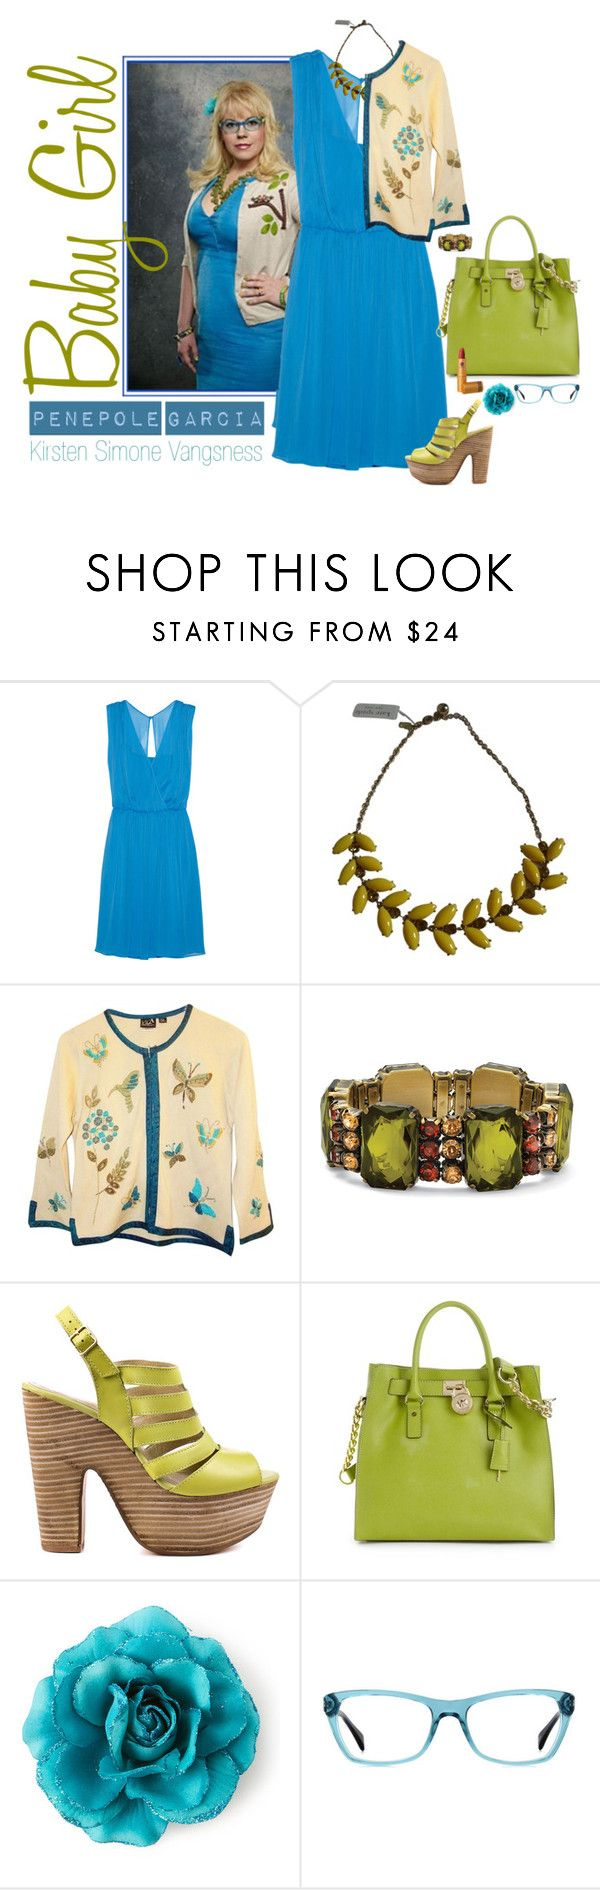 """""""Penelope Garcia"""" by polylana ❤ liked on Polyvore featuring Alice + Olivia, Garcia, Kate Spade, Palm Beach Jewelry, Seychelles, Michael Kors, Ray-Ban, Lipstick Queen, CriminalMinds and penelopegarcia"""